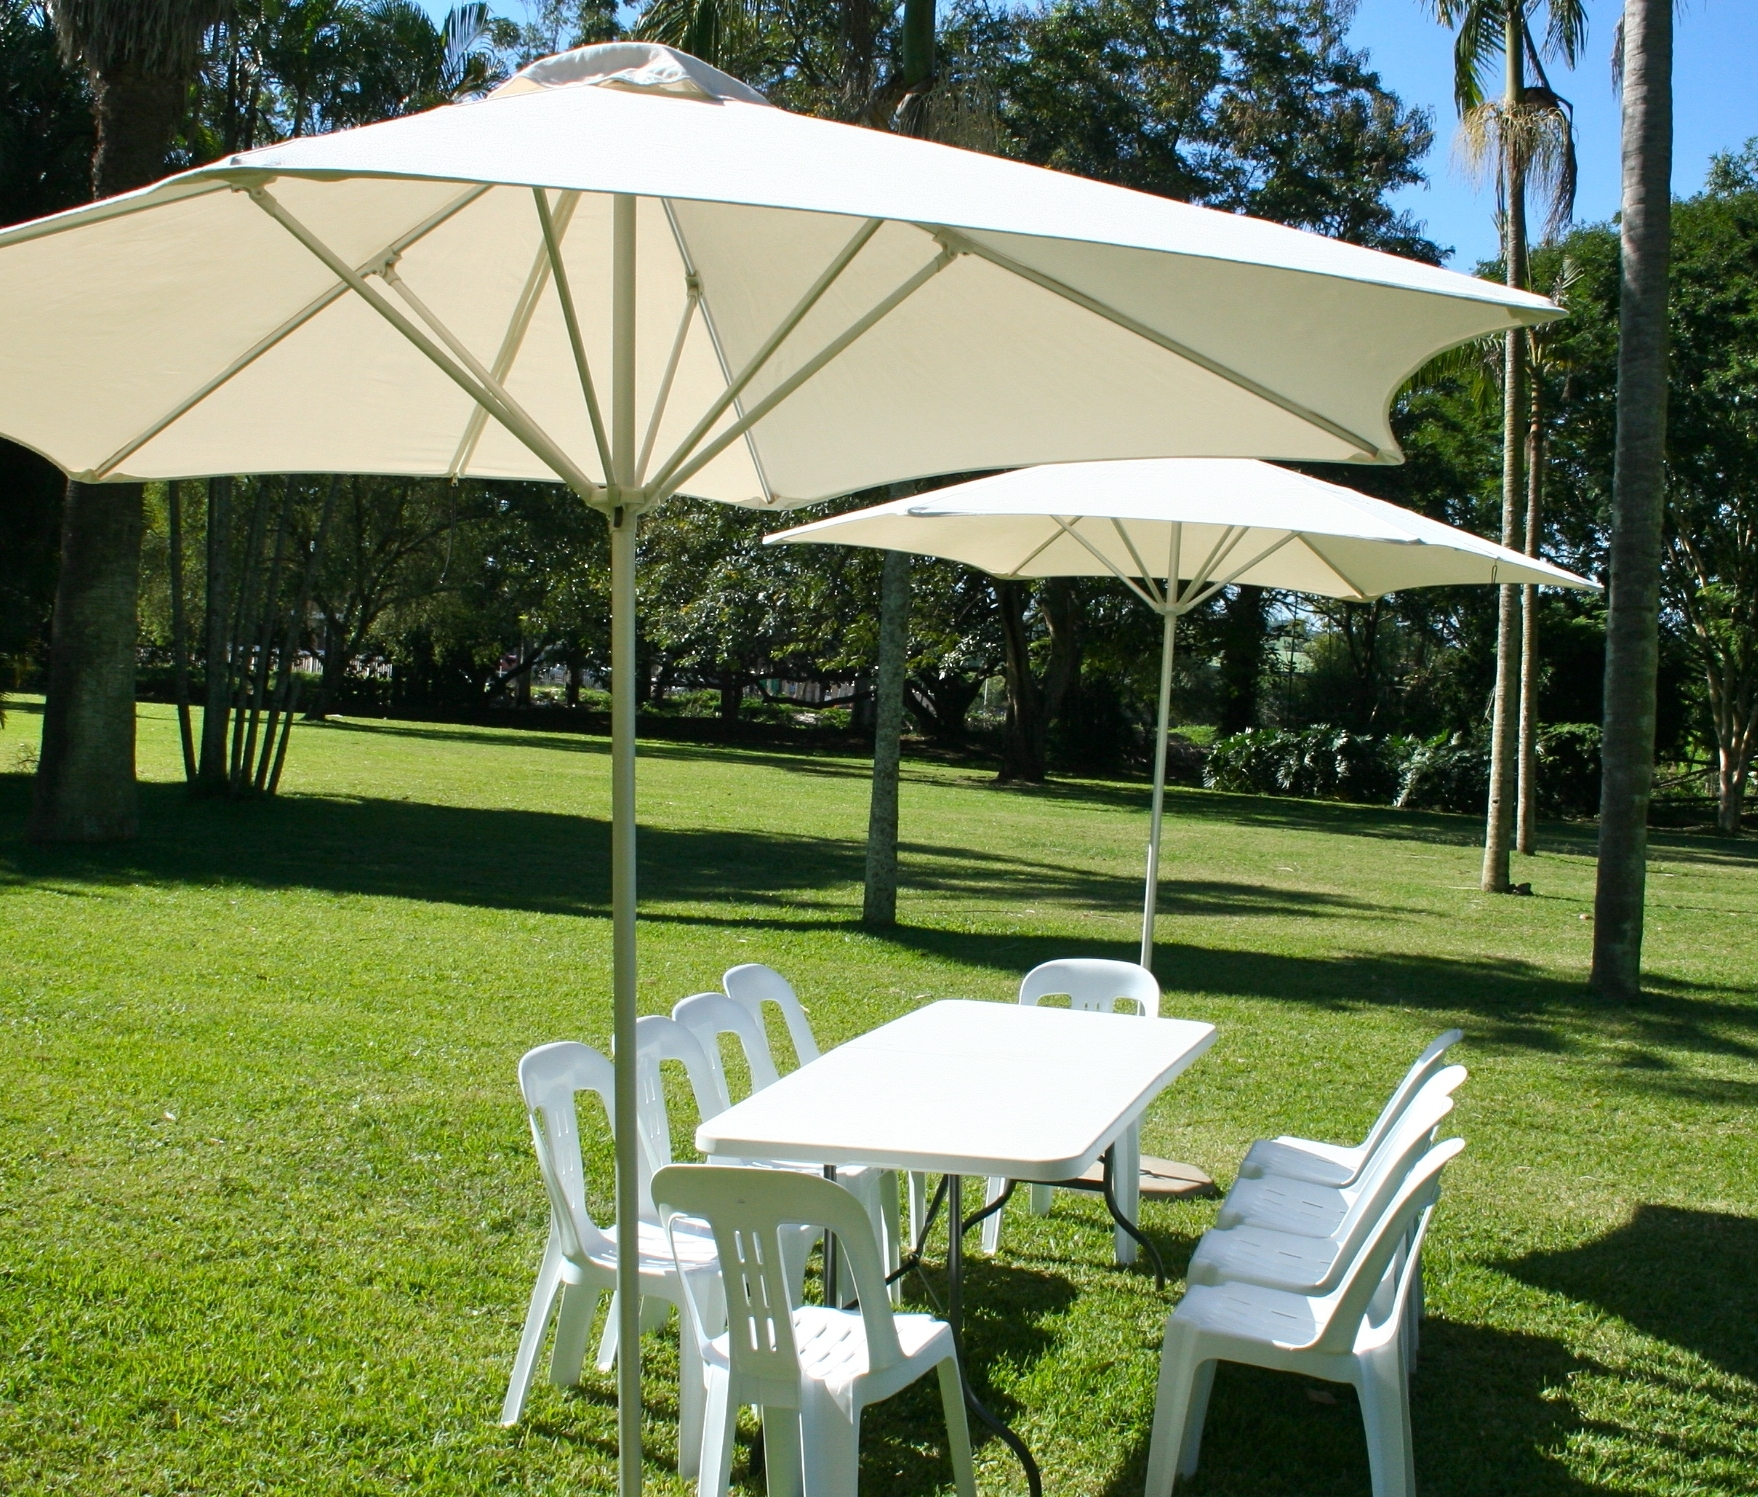 Large Patio Umbrellas For Most Current Outdoor Patio Umbrella Rental Umbrella Hire (View 9 of 20)